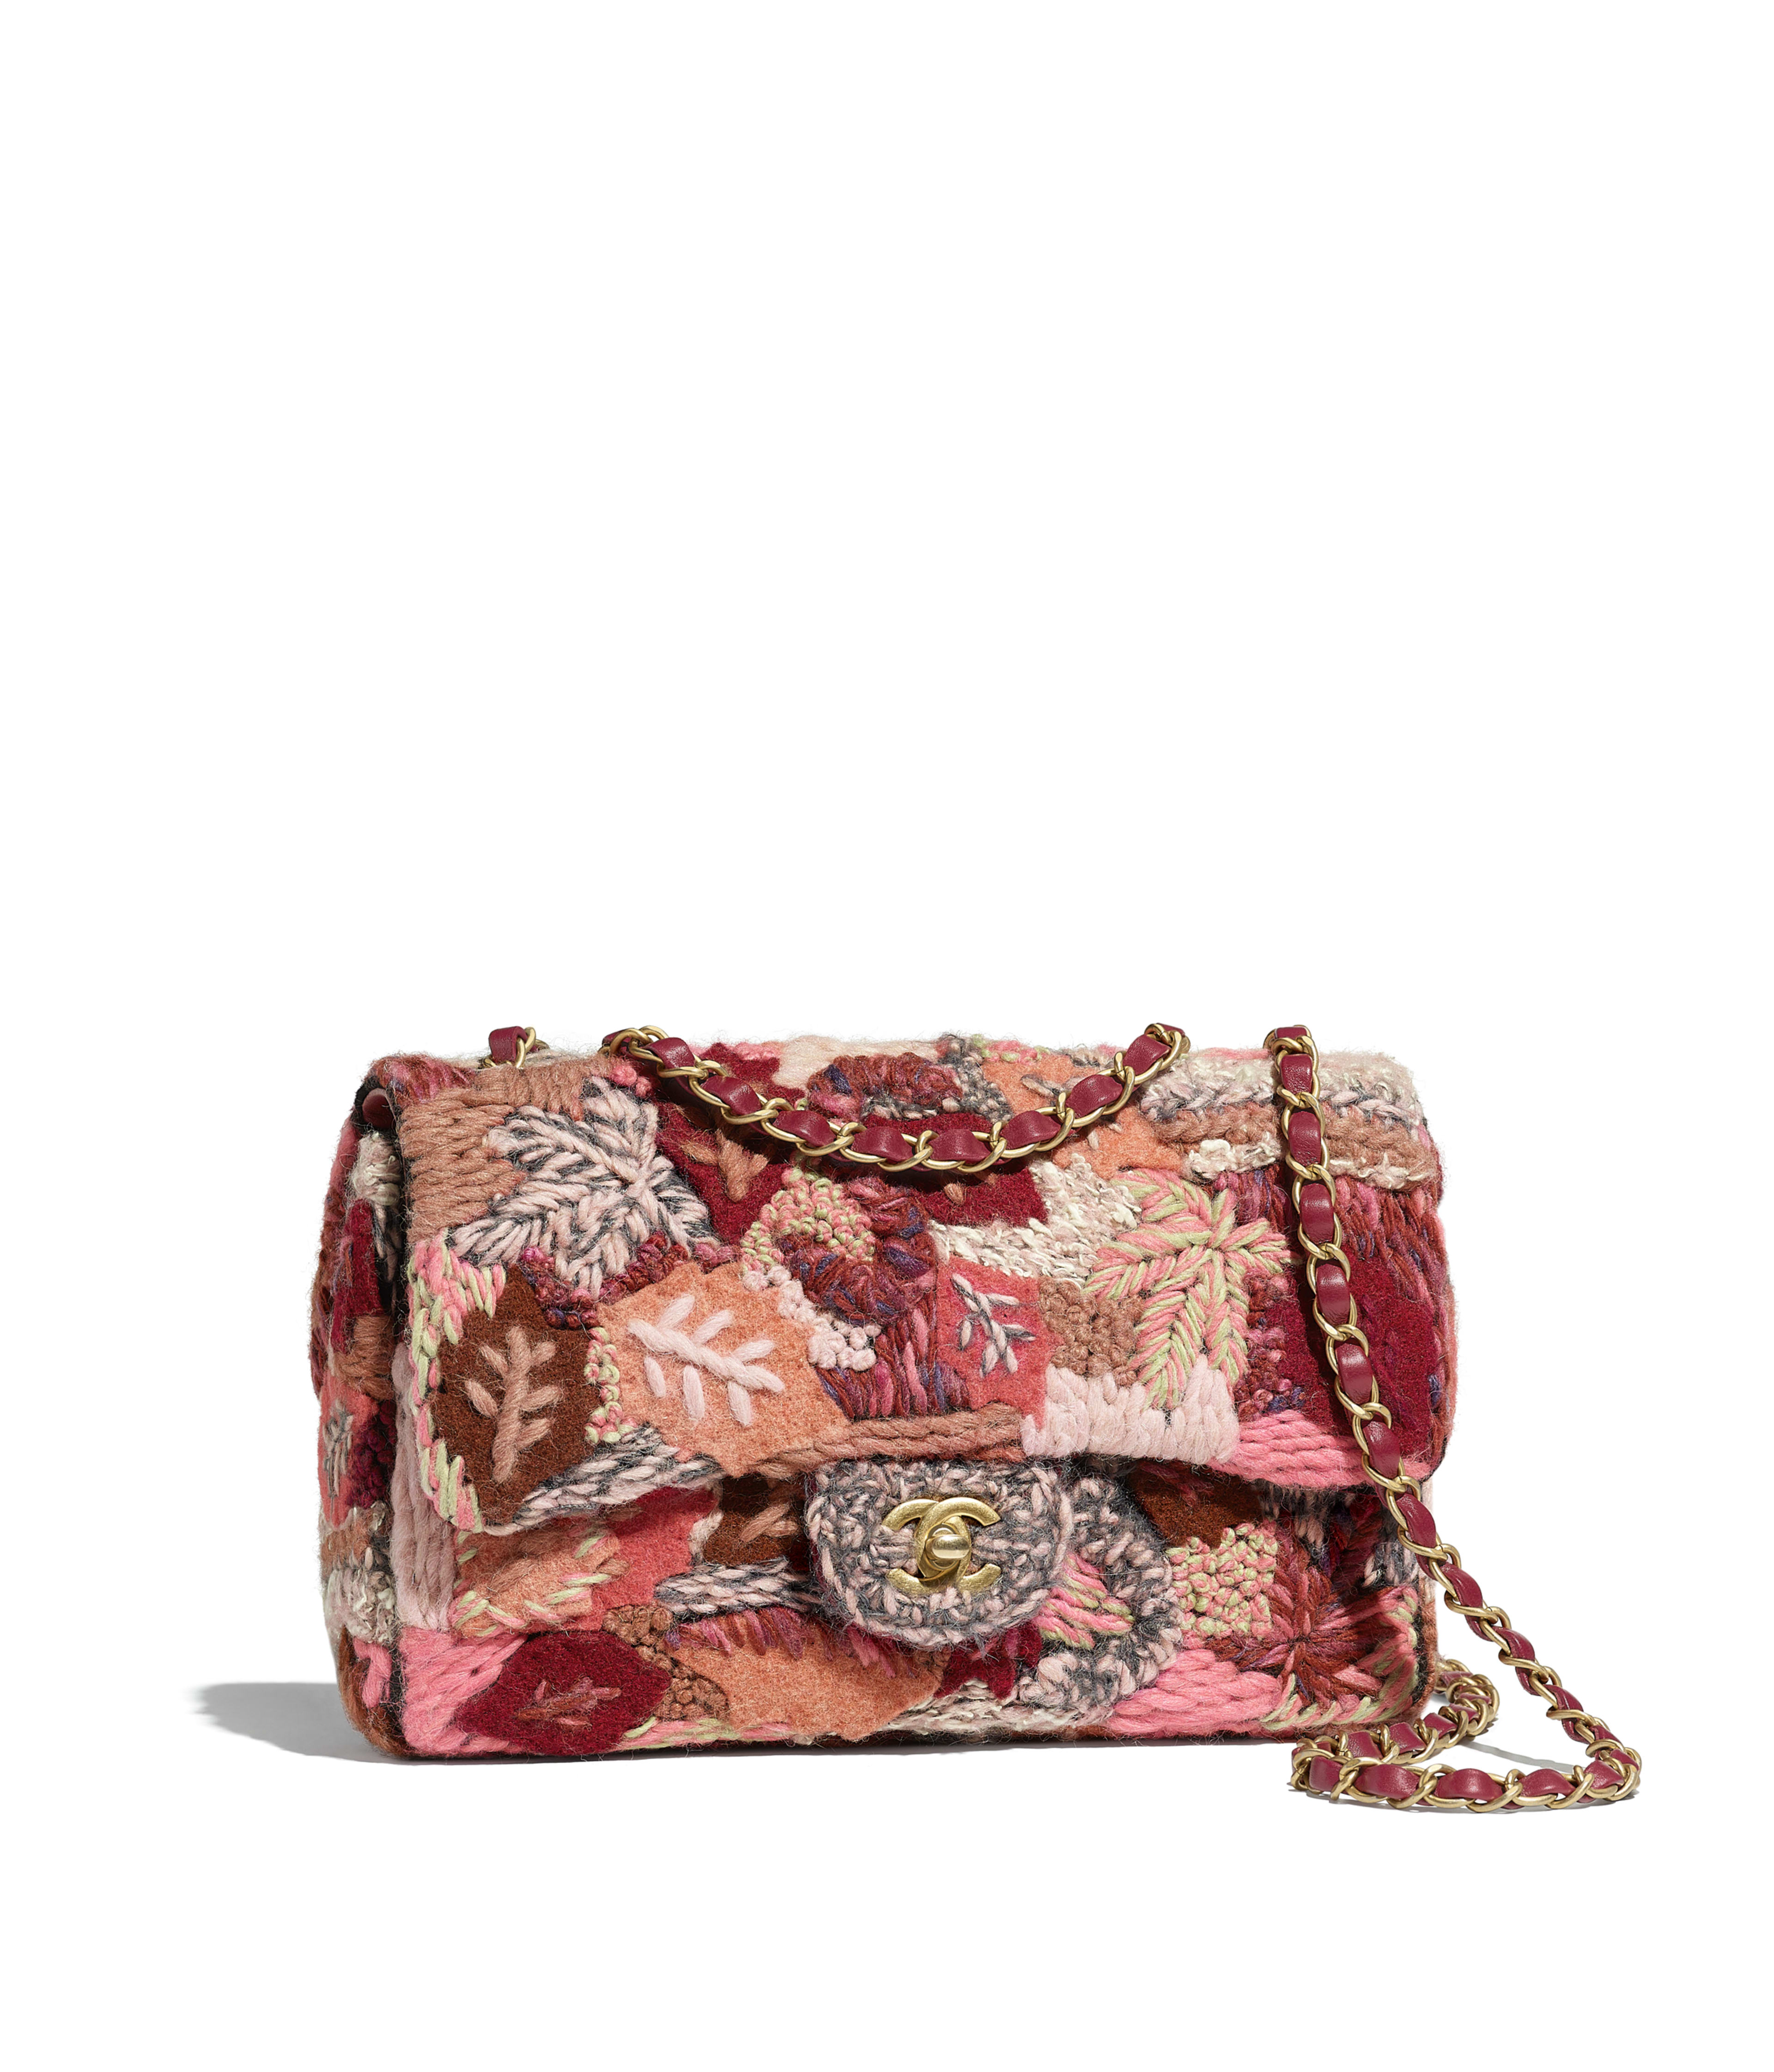 Flap Bag Embroidered Wool Gold Tone Metal Pink Red Gray Ref A57925y839505b526